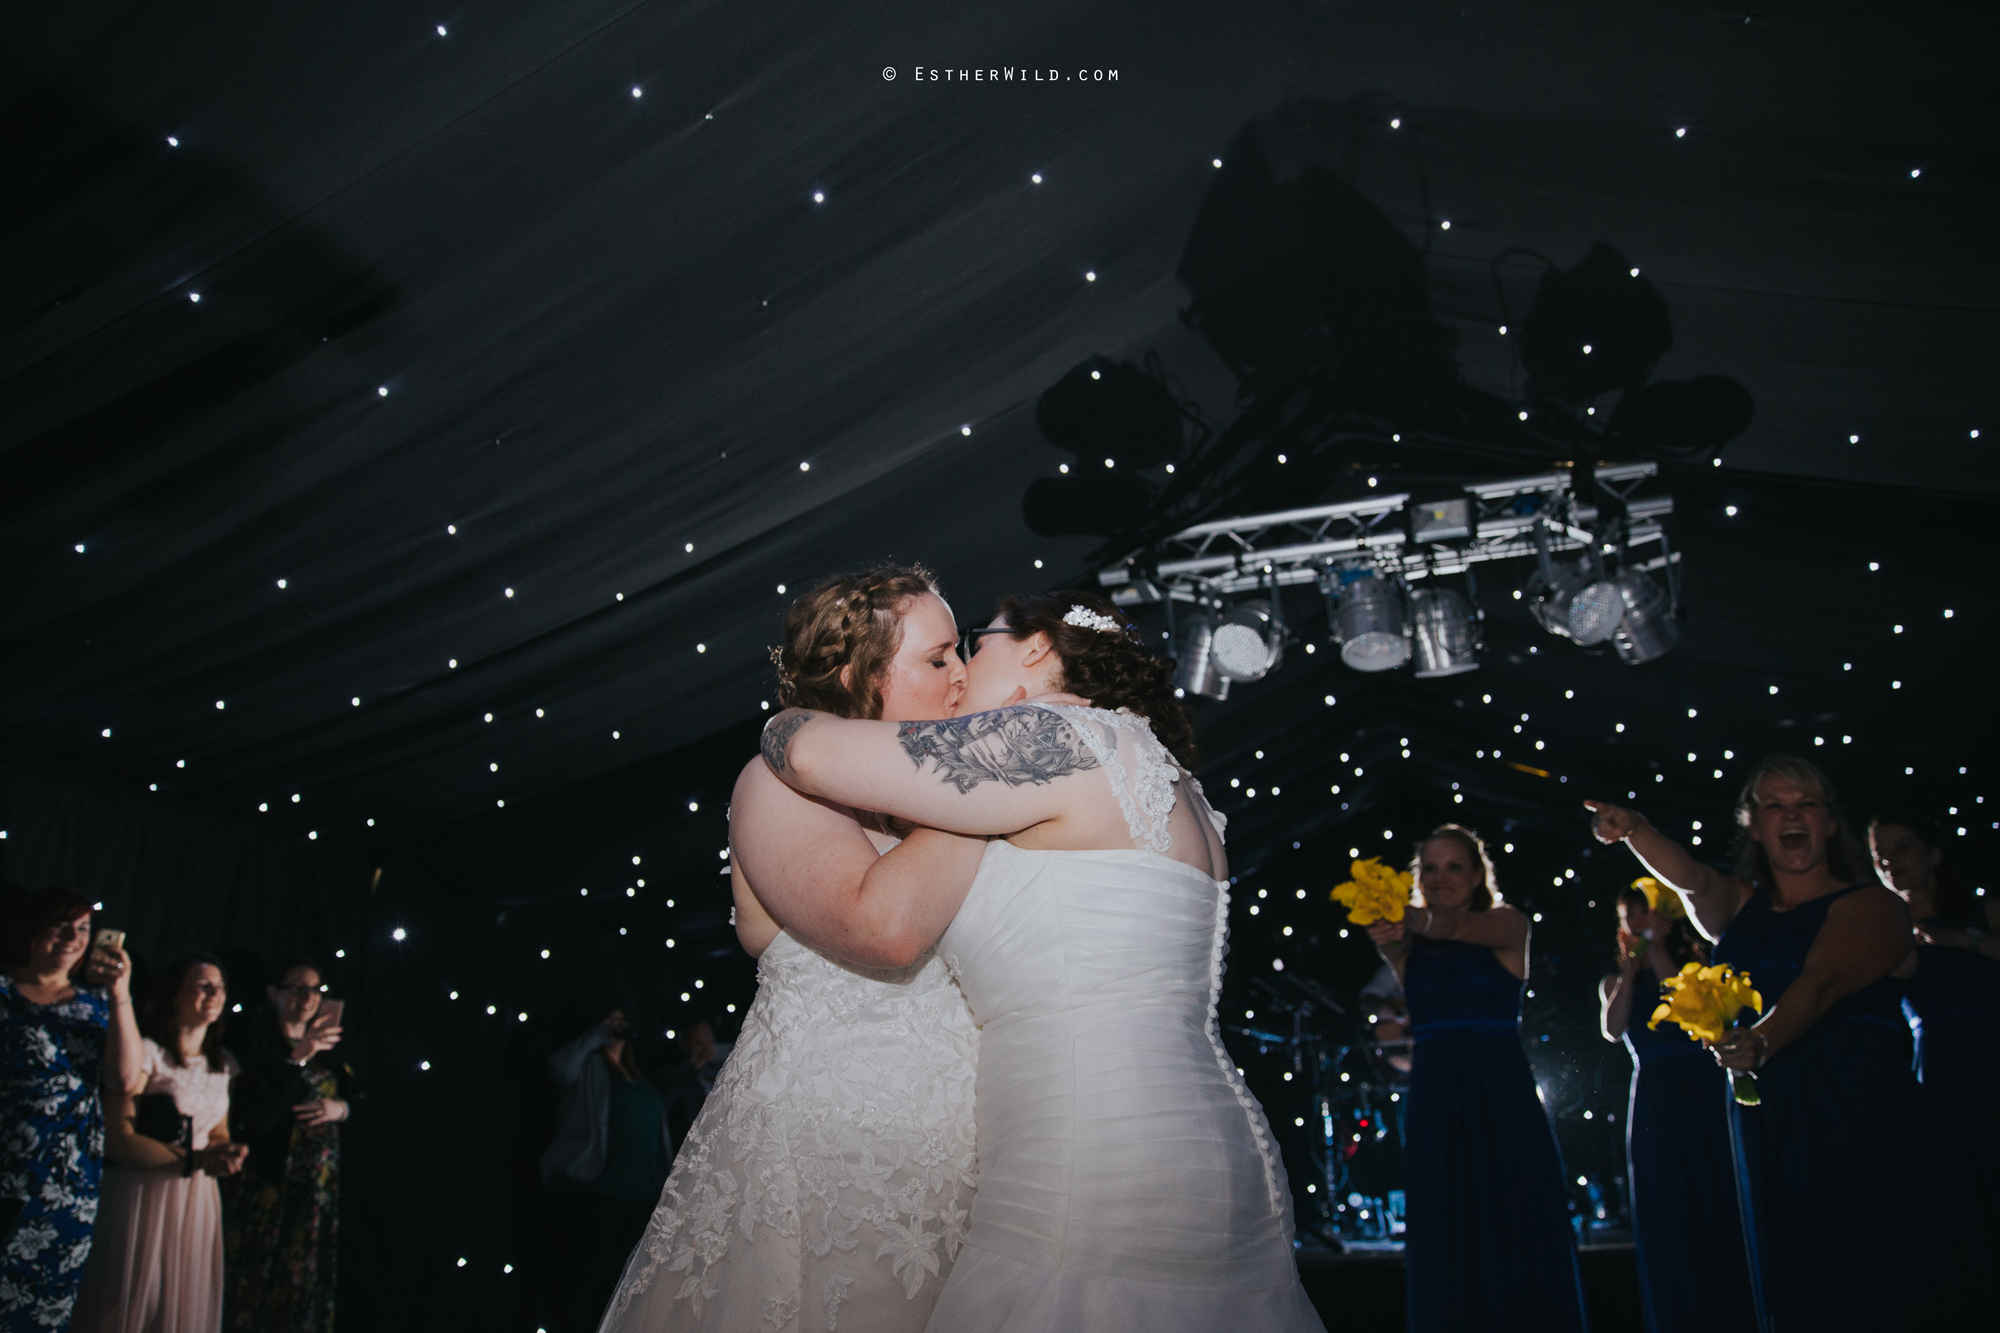 Old_Hall_Ely_Wedding_Esther_Wild_Photographer_IMG_2949.jpg